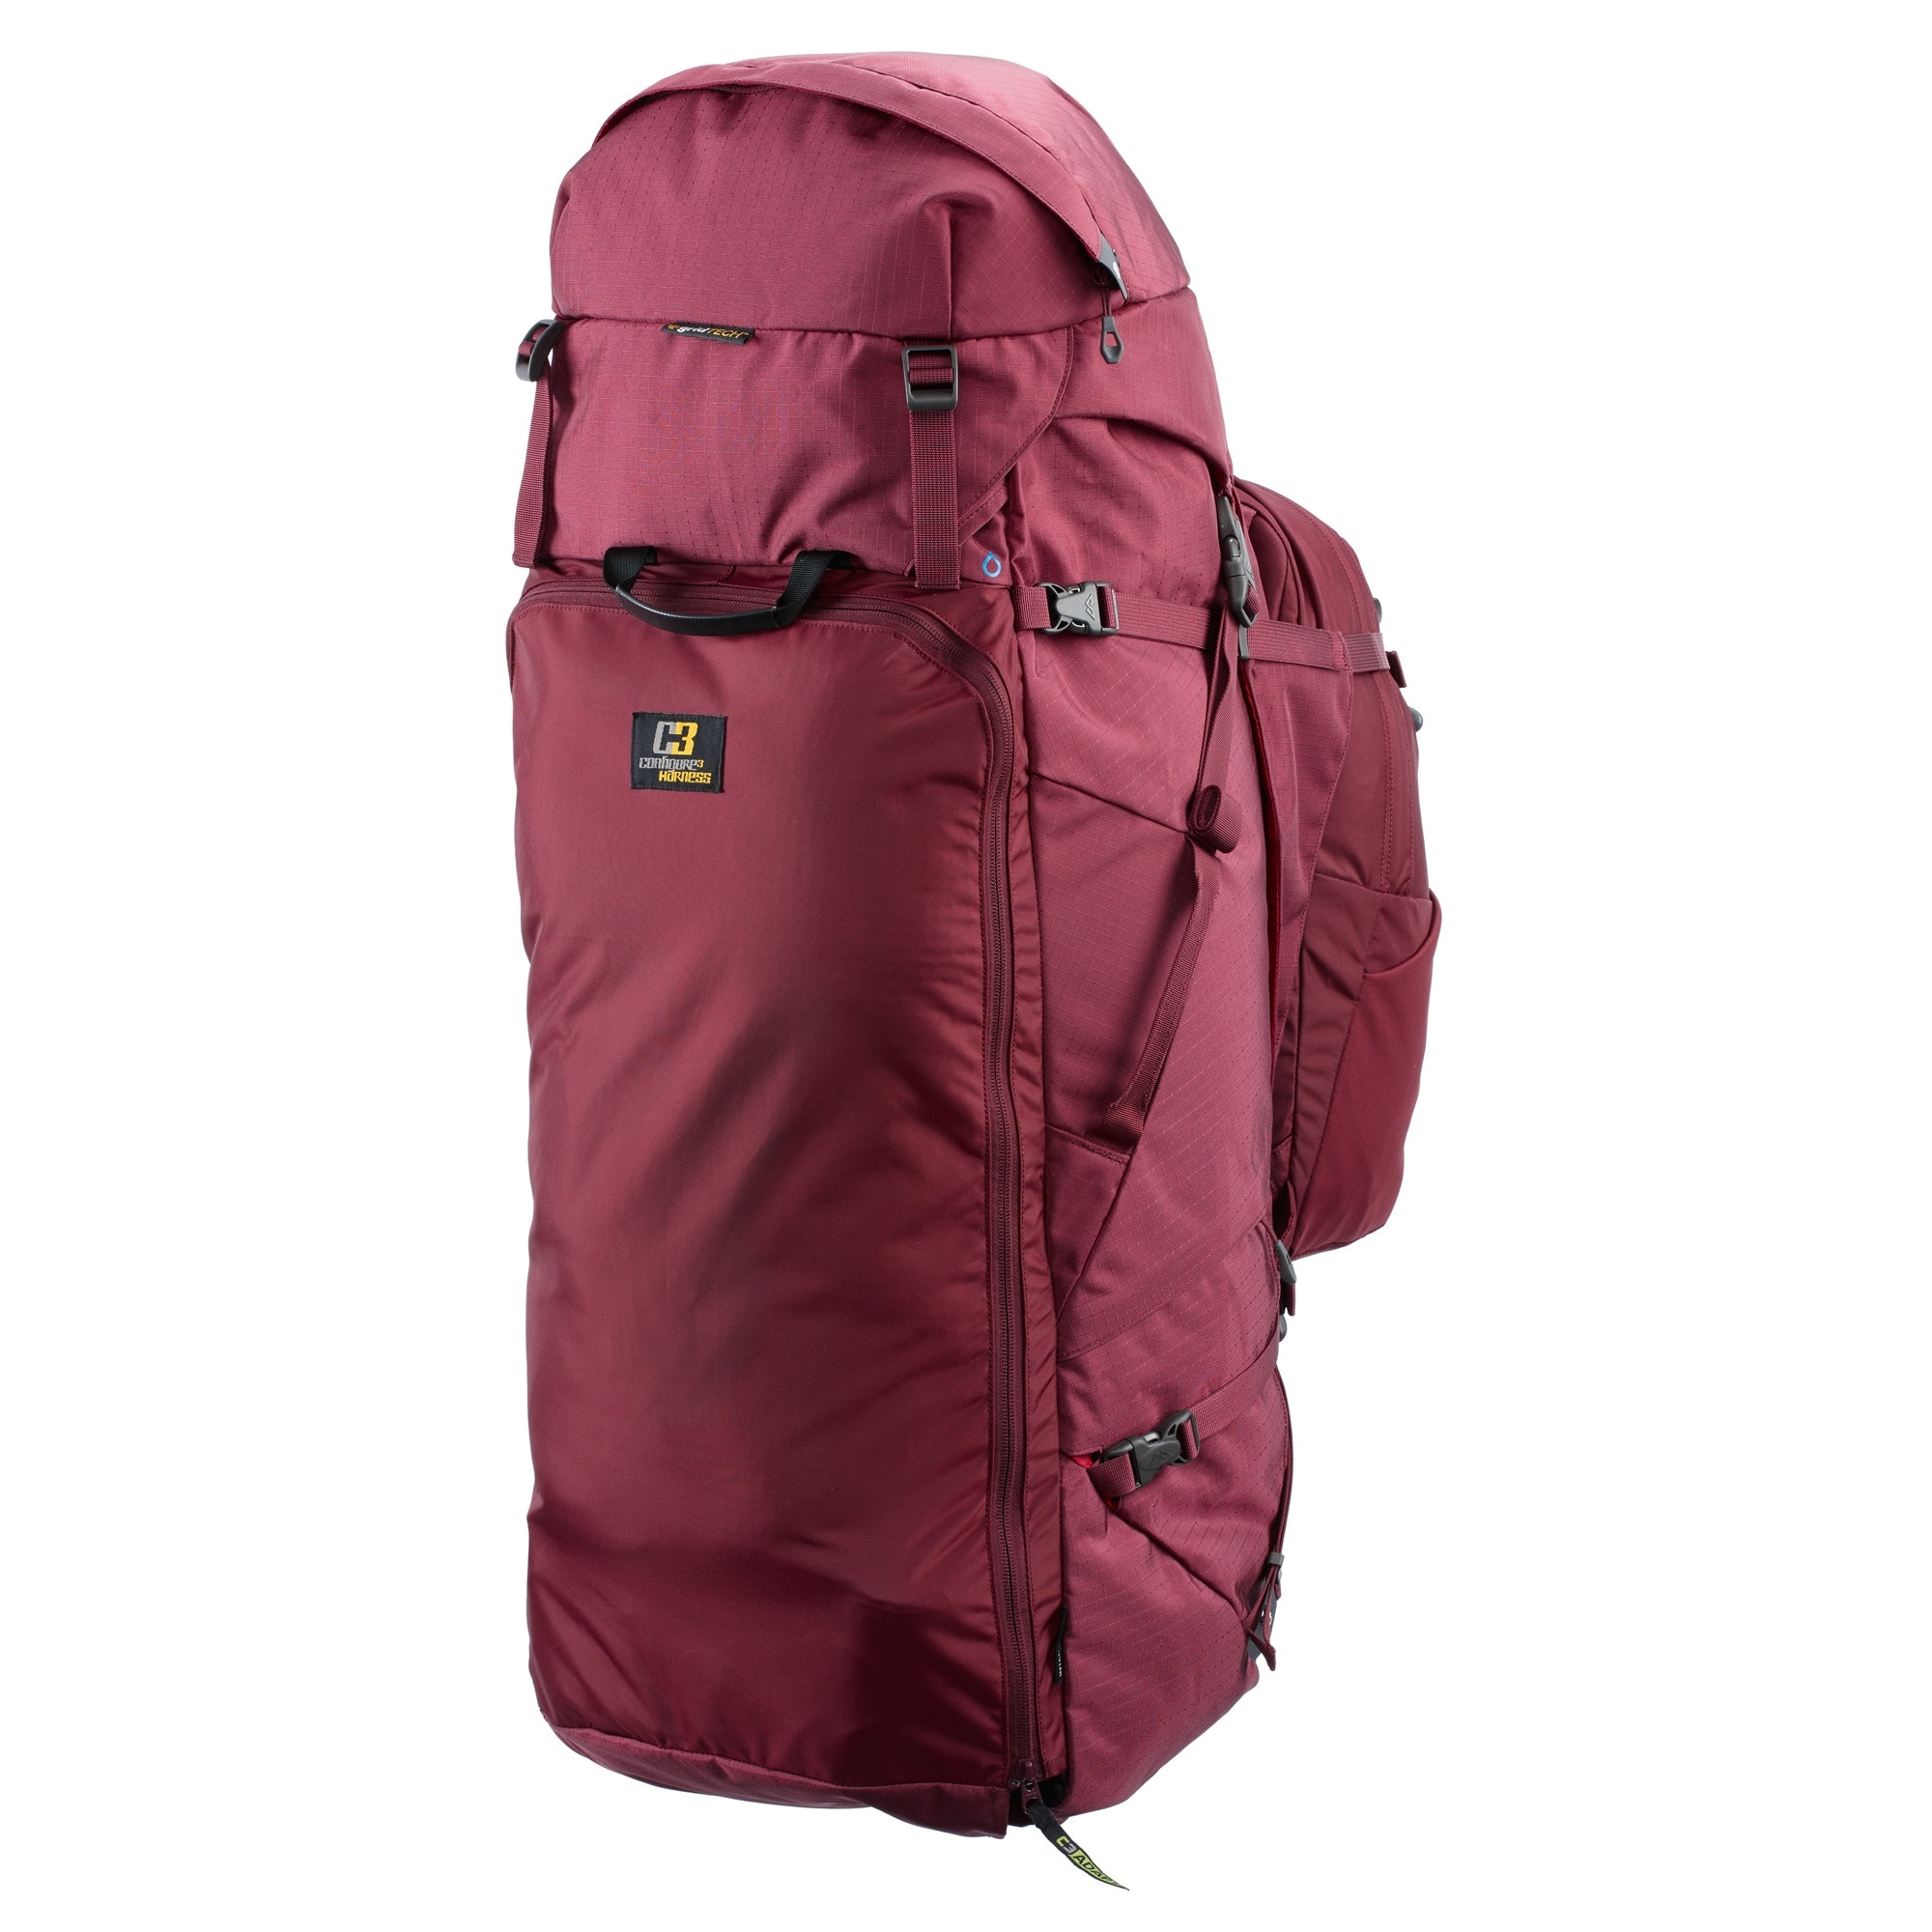 NEW-Kathmandu-Interloper-gridTECH-70L-Hiking-Travel-Backpack-Luggage-with thumbnail 12